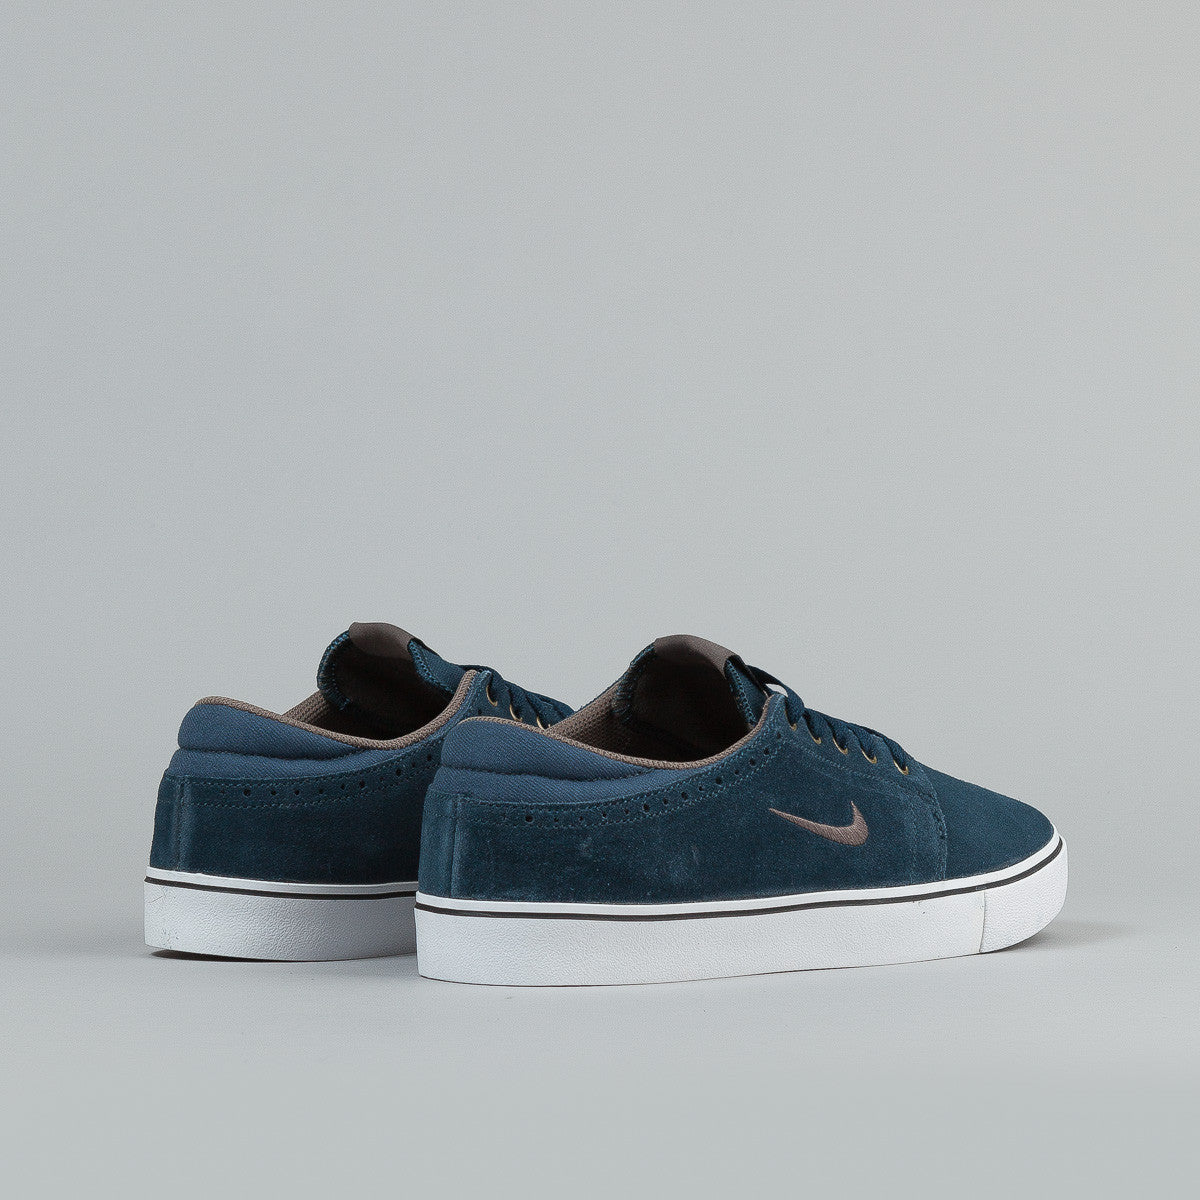 Nike SB Team Edition 2 Shoes - Deep Ocean / Clay - Gum Dark Brown